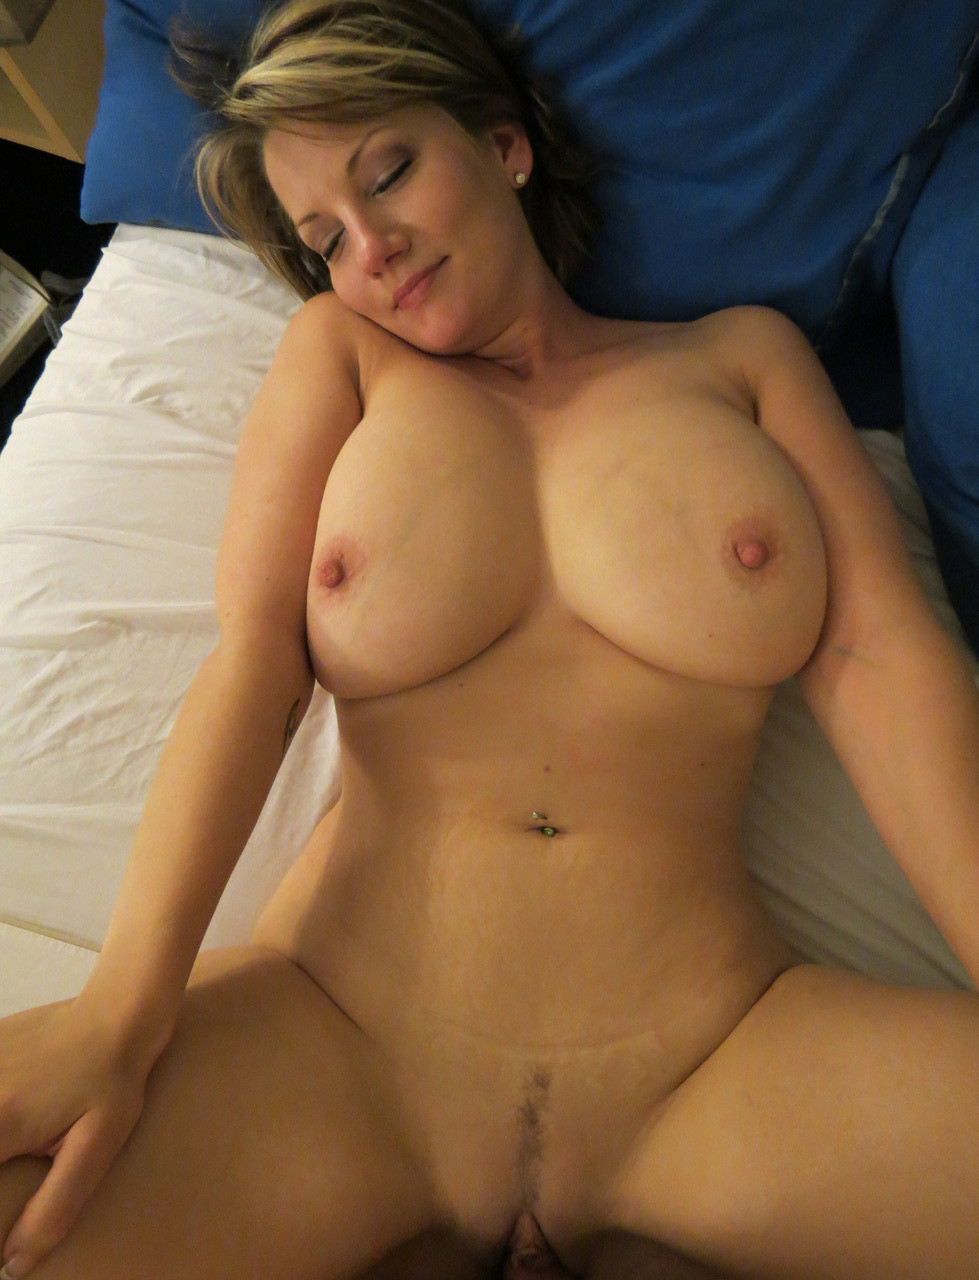 having Amateur sex wife